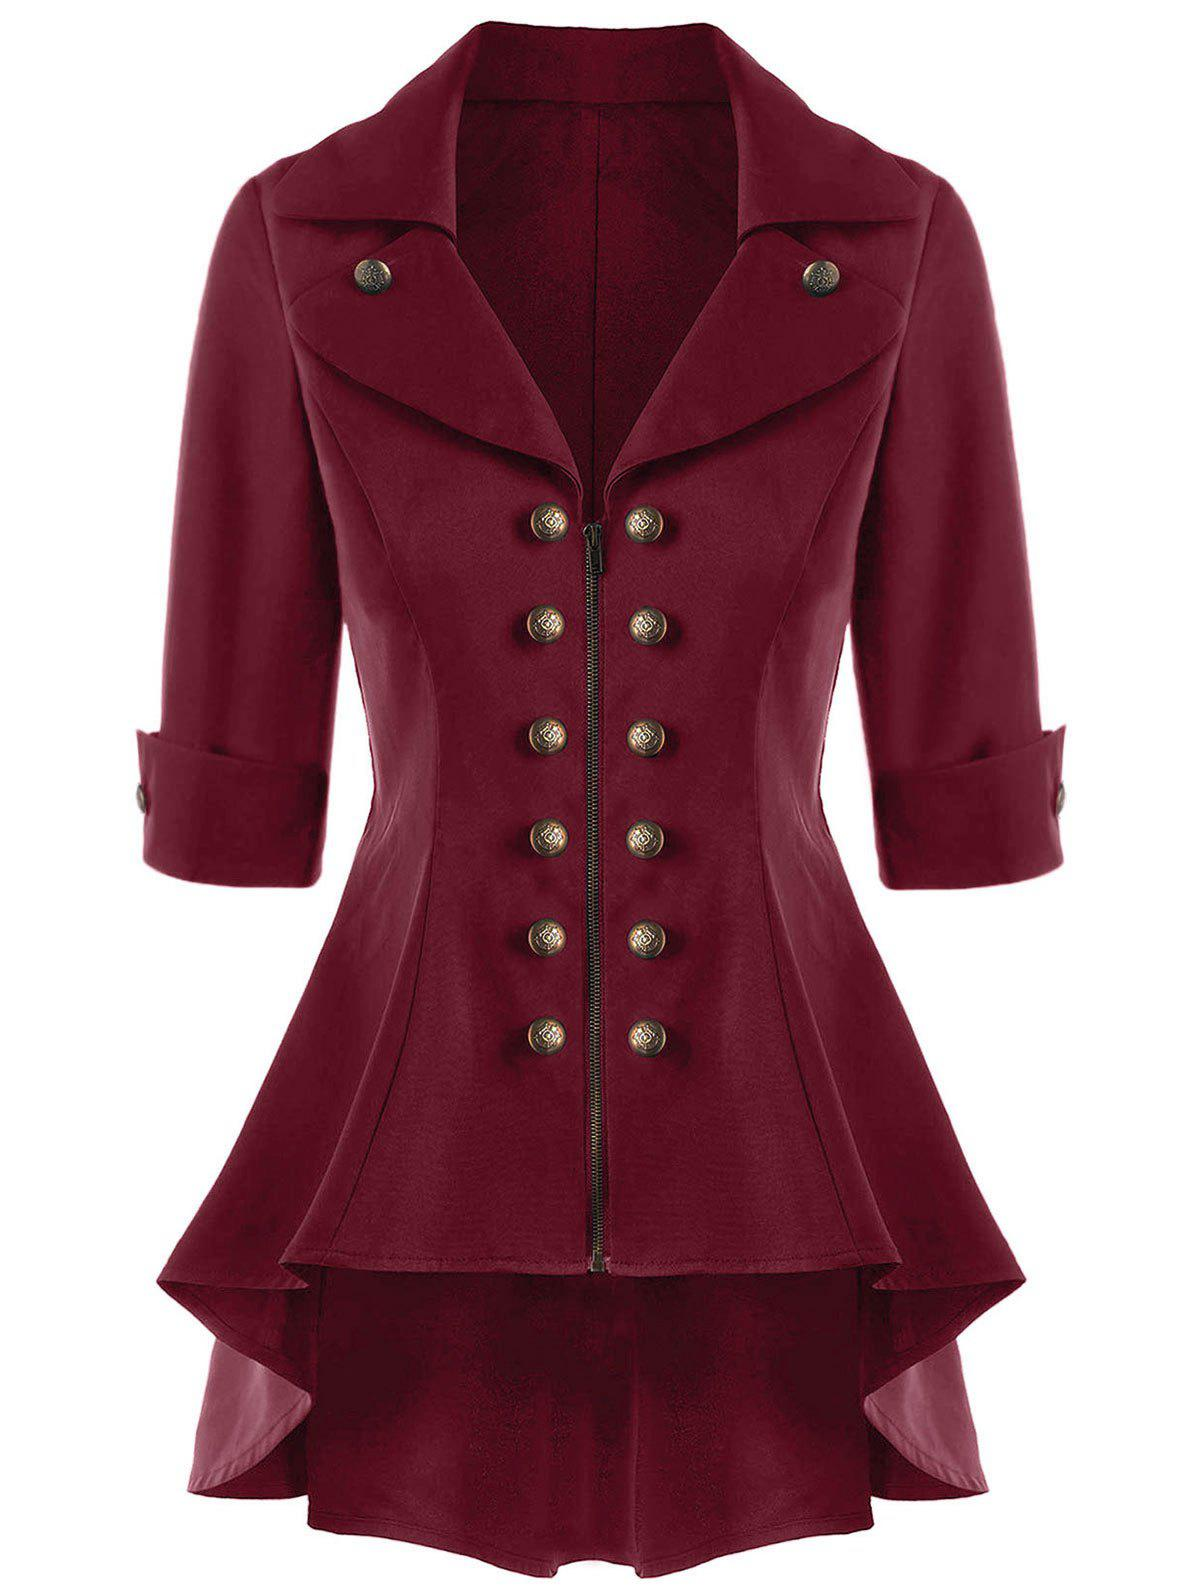 Double Breasted High Low Flare Trench CoatWOMEN<br><br>Size: 2XL; Color: WINE RED; Clothes Type: Trench; Material: Polyester; Type: Skirted; Shirt Length: Regular; Sleeve Length: Three Quarter; Collar: Notched Collar; Pattern Type: Solid; Embellishment: Button; Style: Vintage; Season: Fall,Spring,Summer; Weight: 0.4300kg; Package Contents: 1 x Trench Coat;